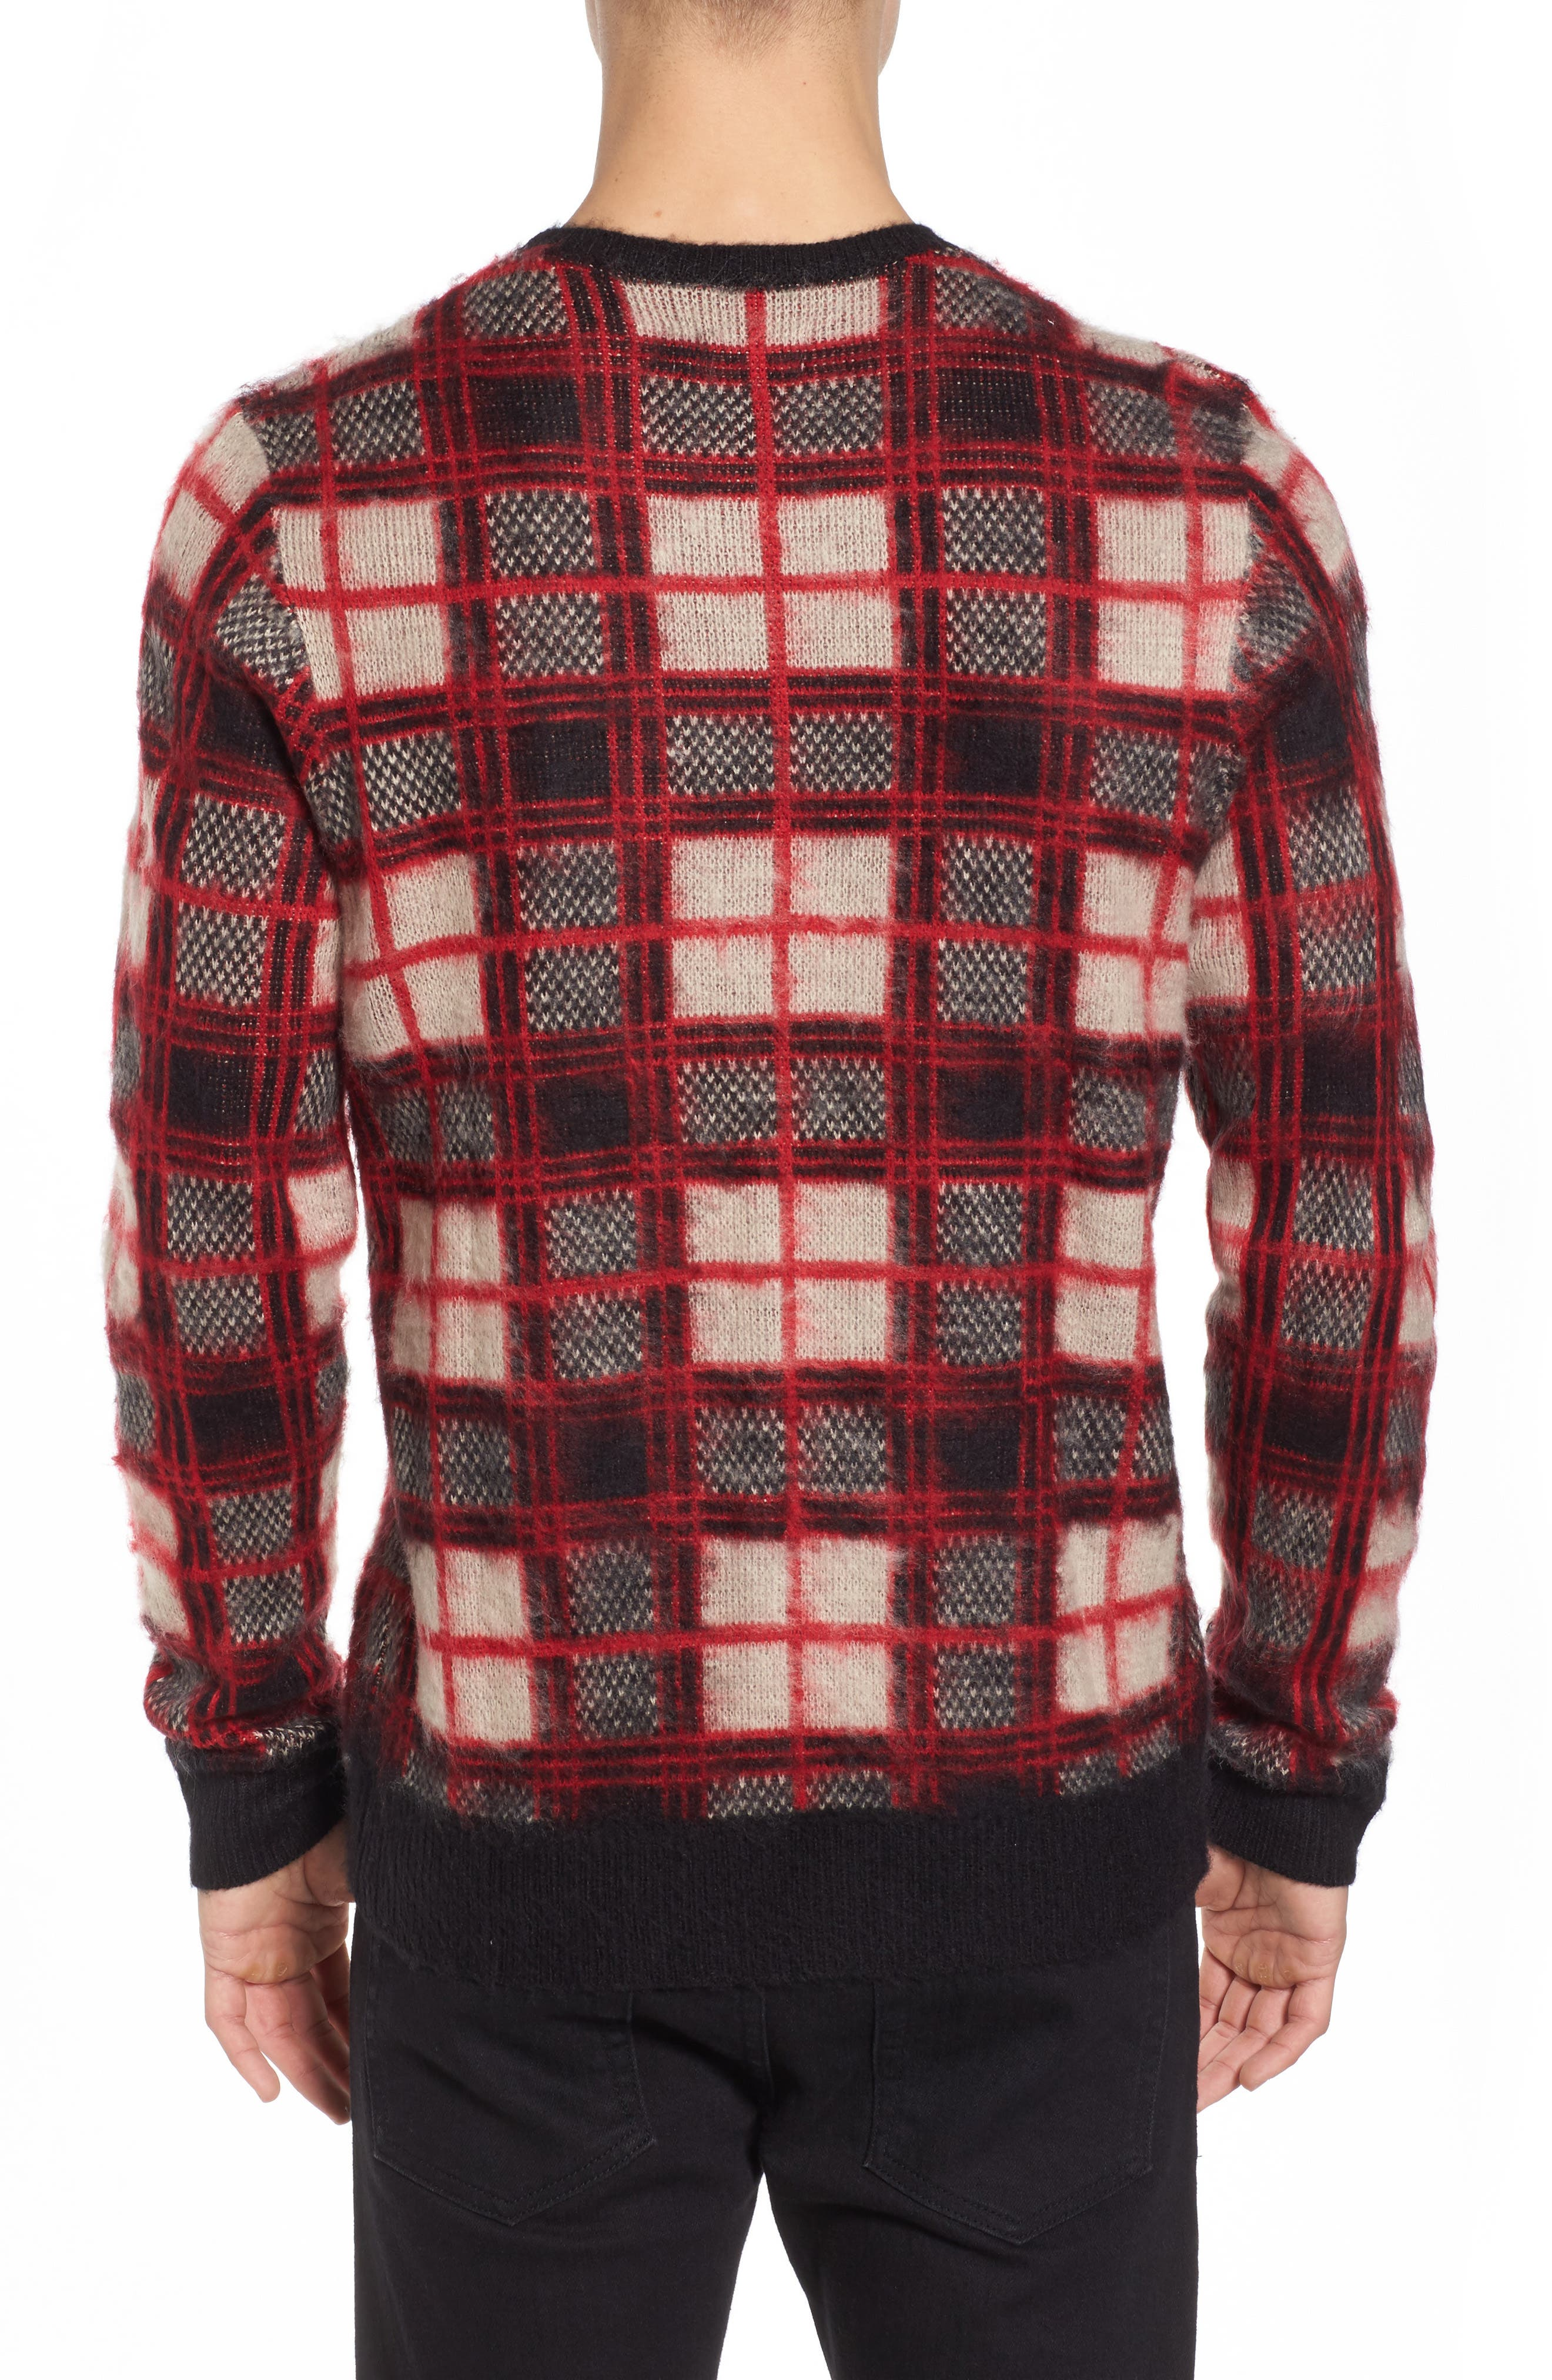 Fuzzy Plaid Sweater,                             Alternate thumbnail 2, color,                             610